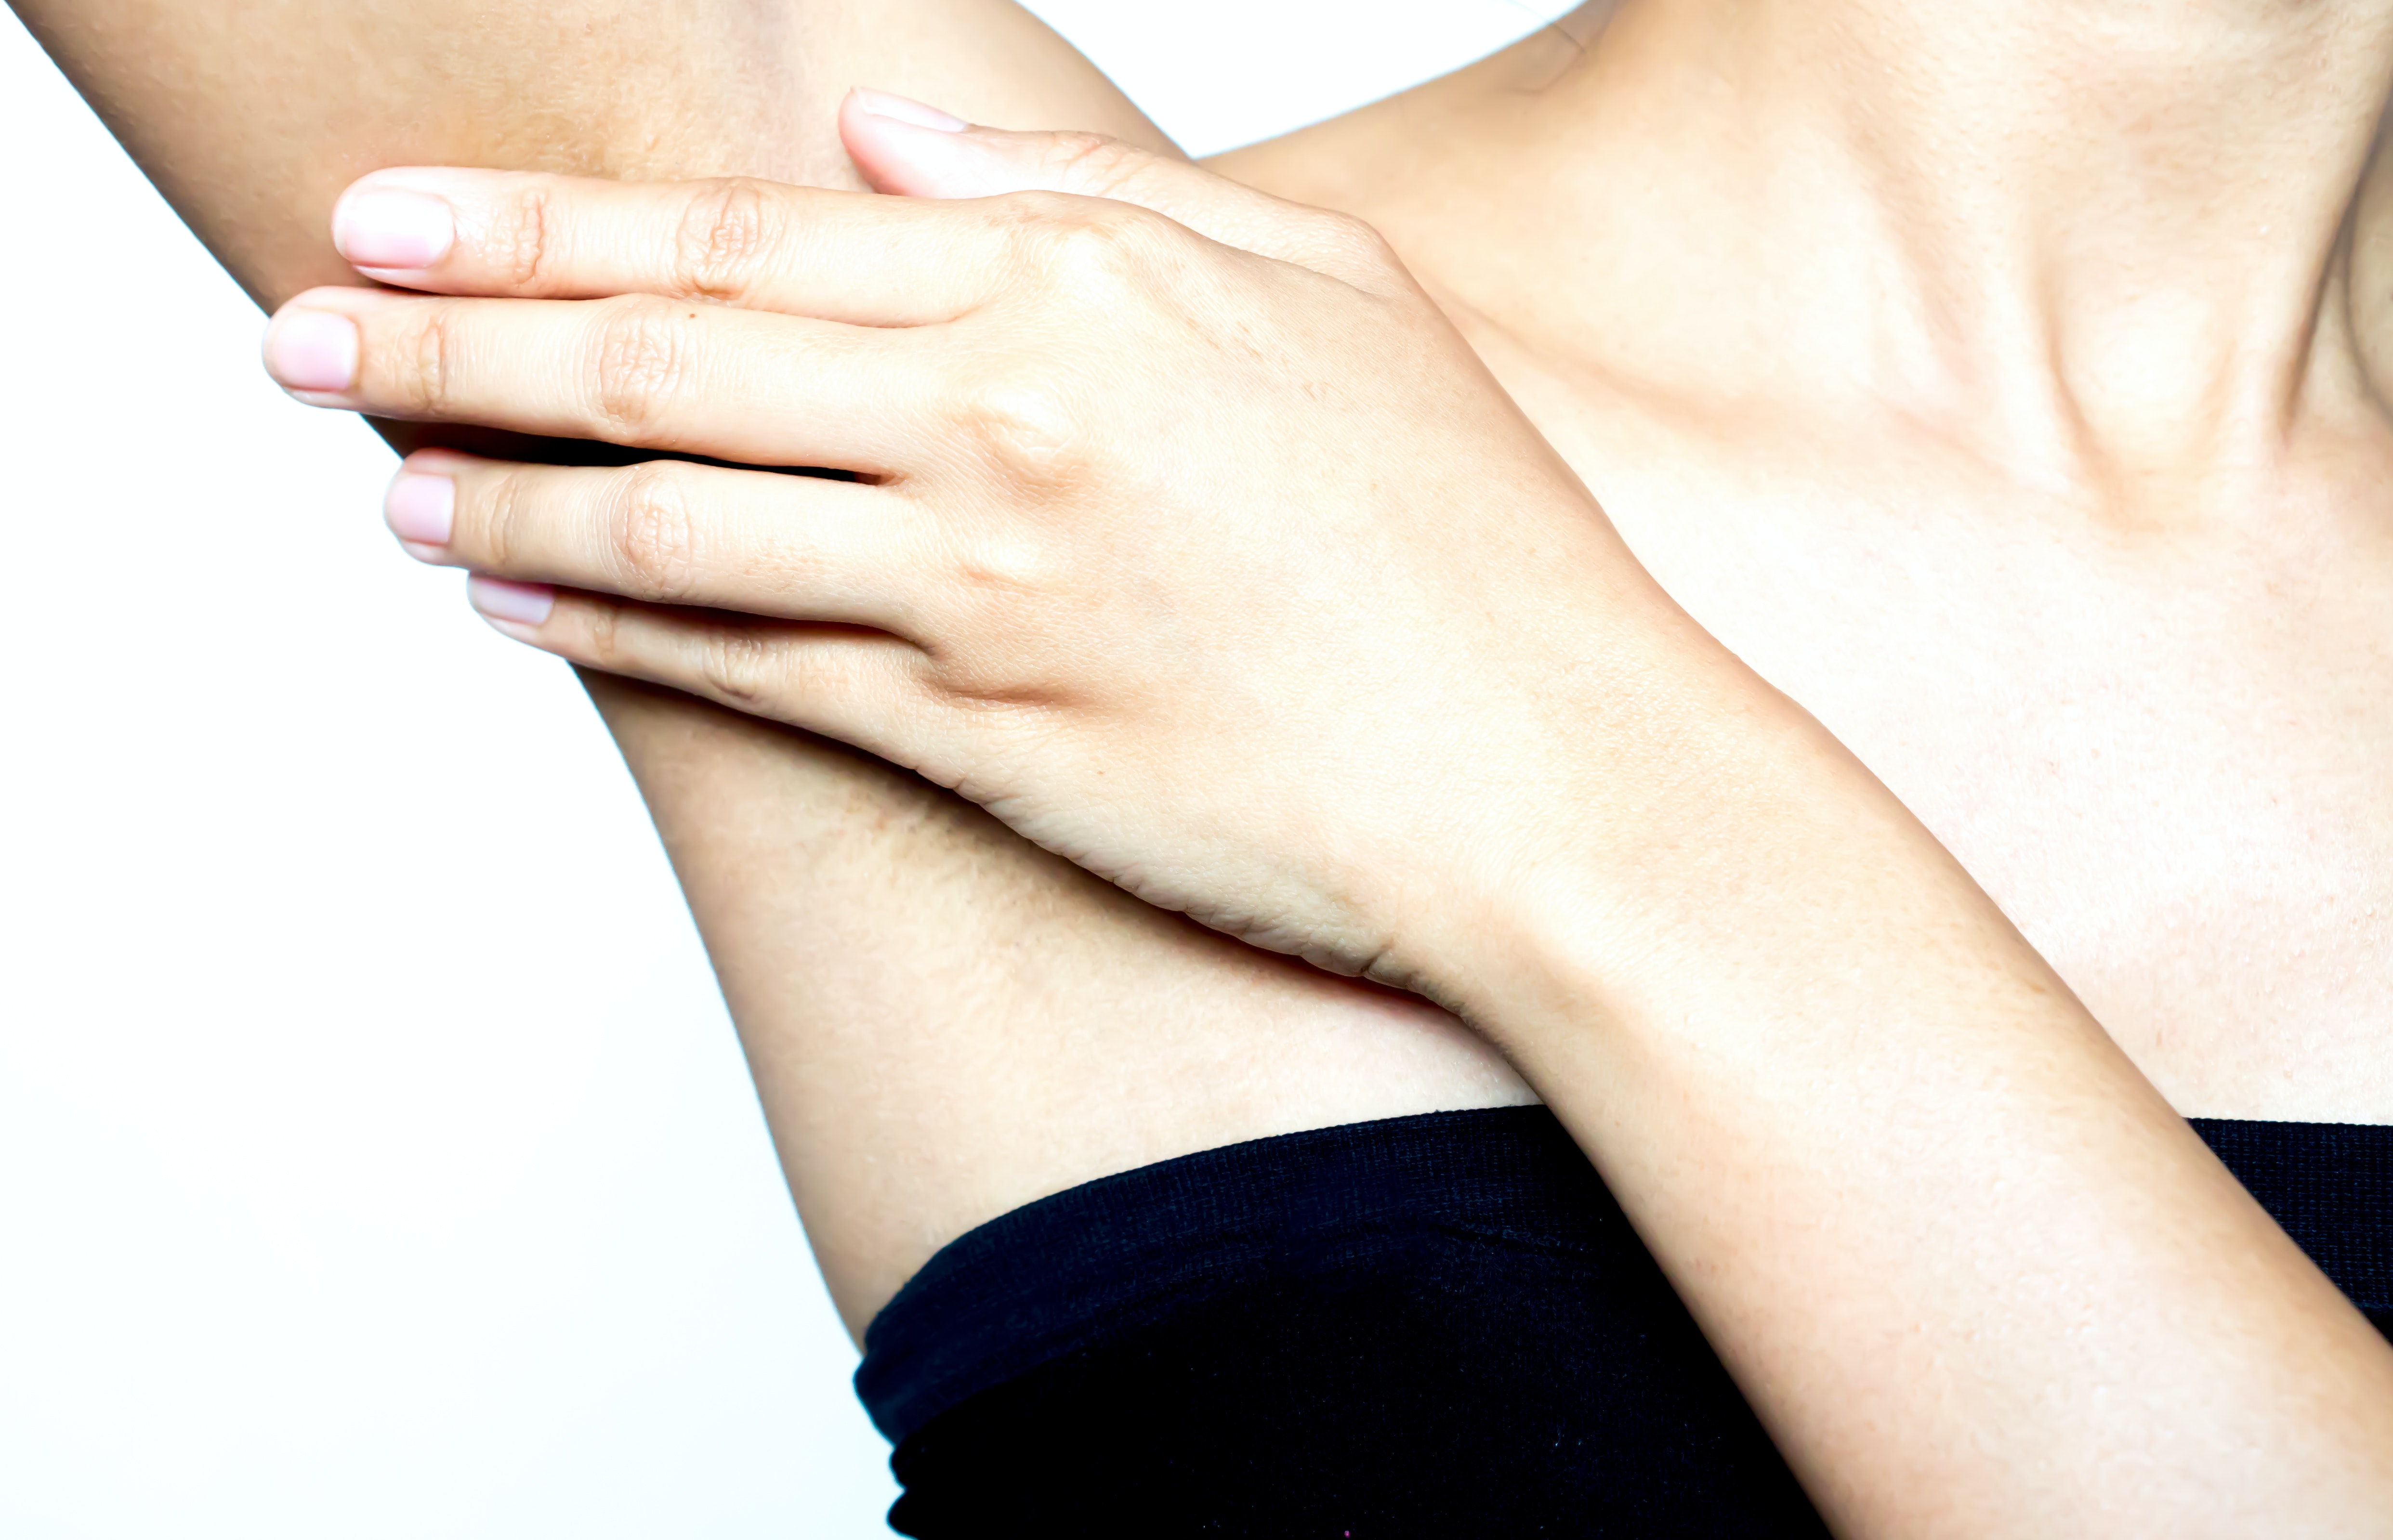 An image depicting a person suffering from painful armpit lump symptoms